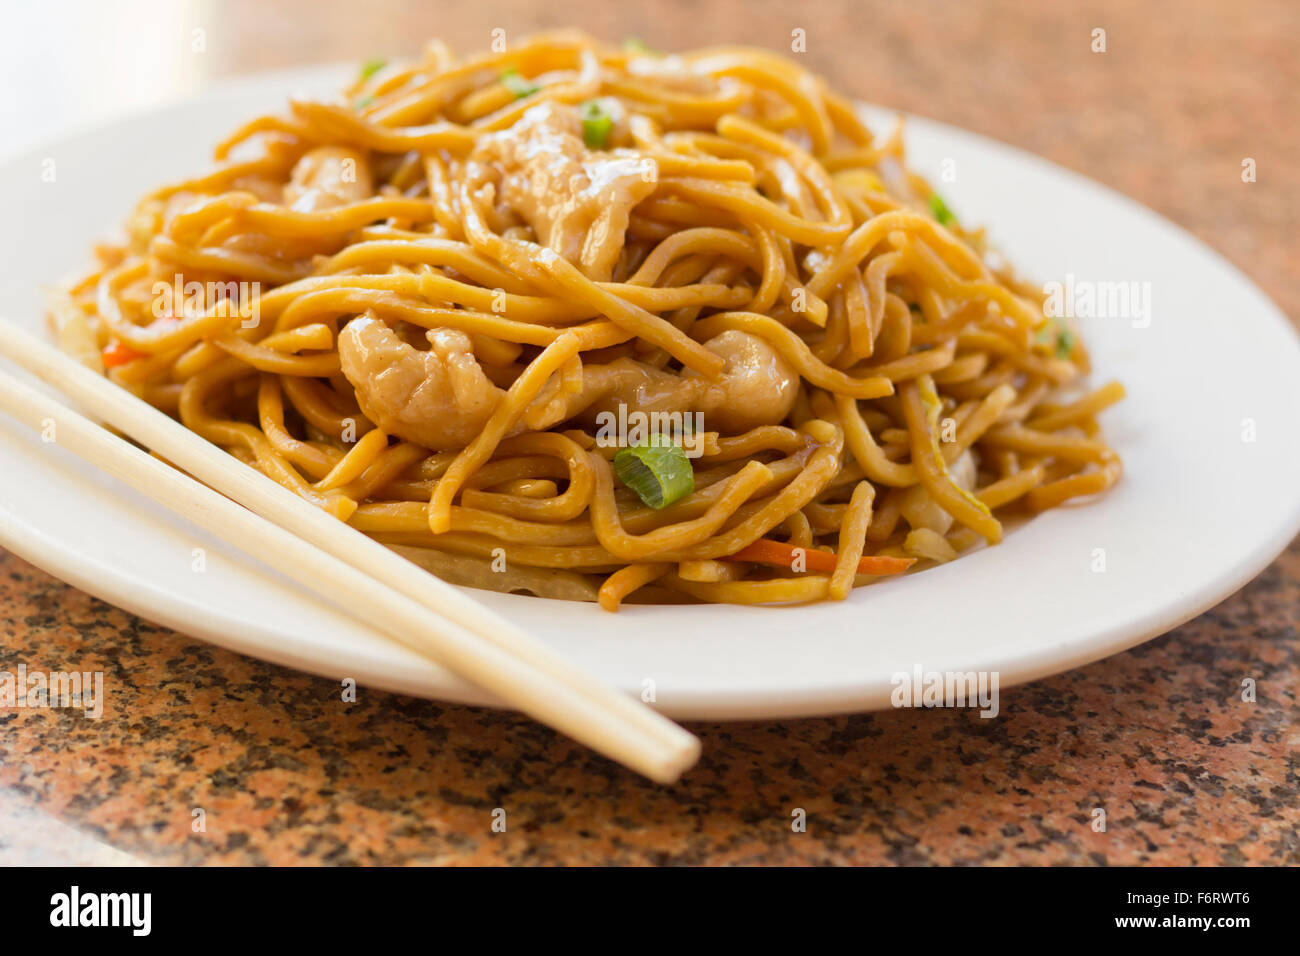 Delicious chinese food chicken lo mein stir fry stock photo delicious chinese food chicken lo mein stir fry forumfinder Images